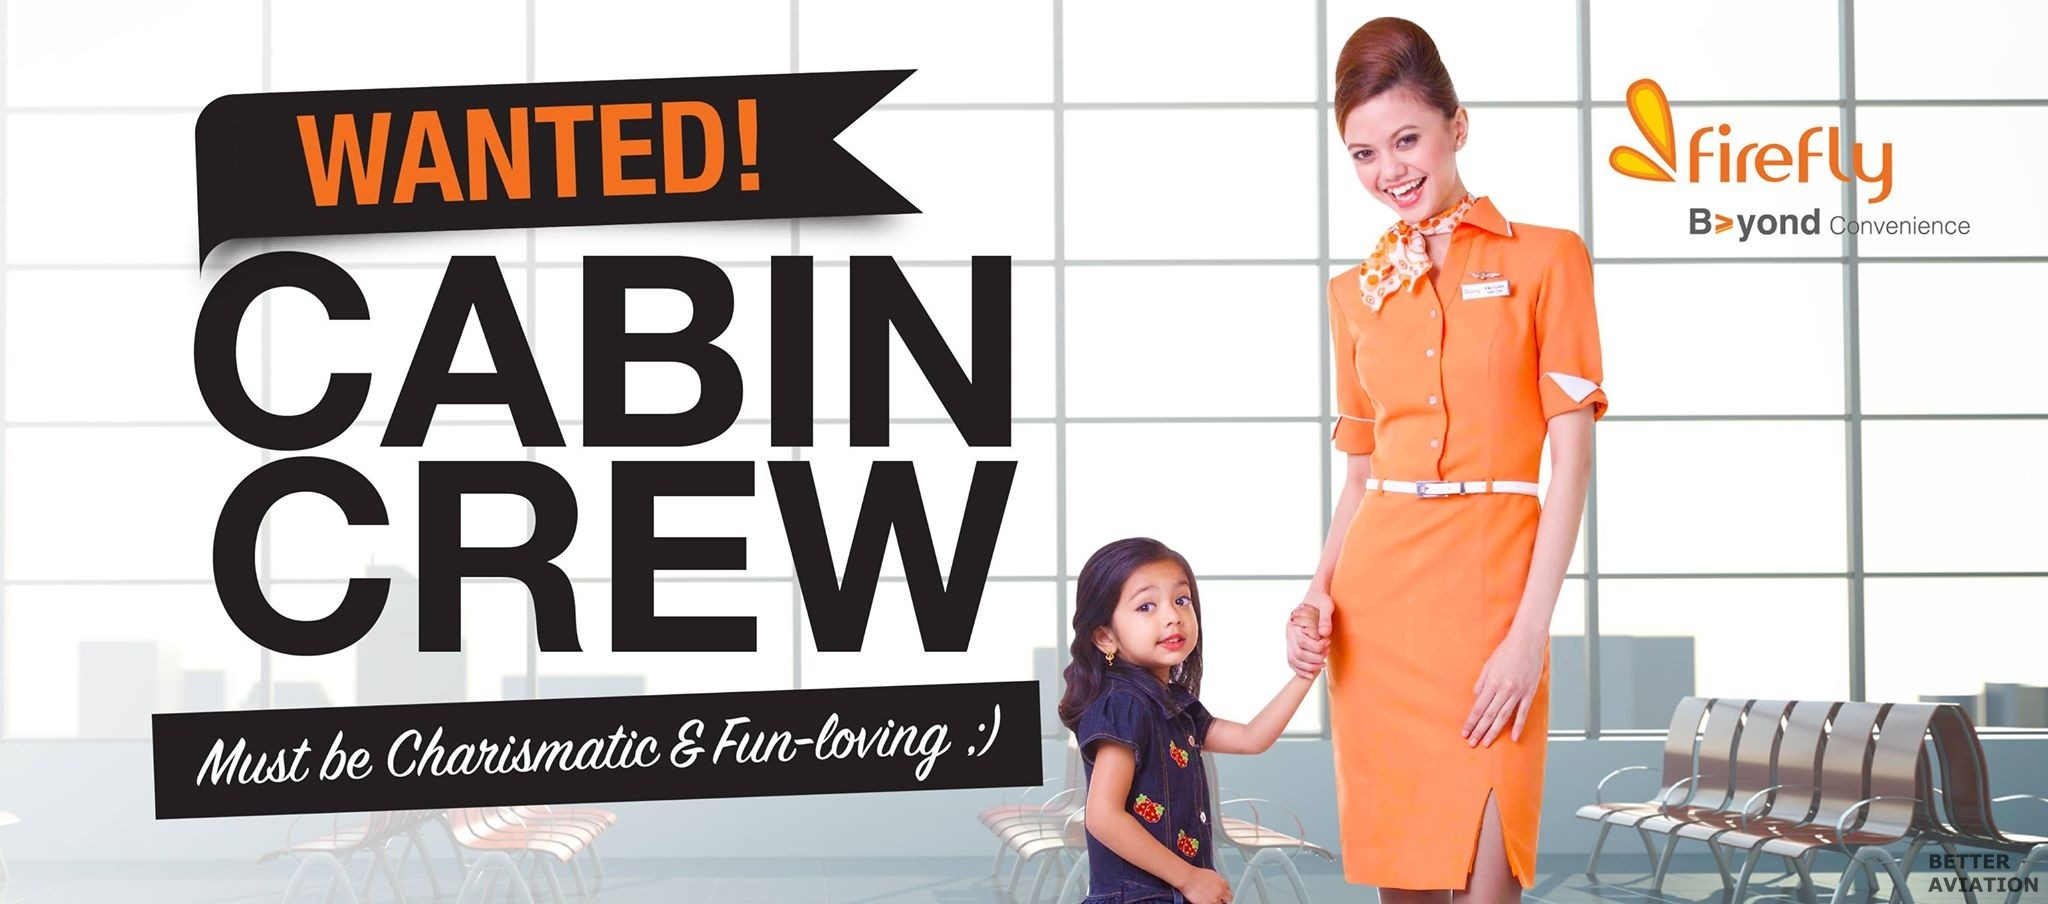 Firefly Cabin Crew Wanted